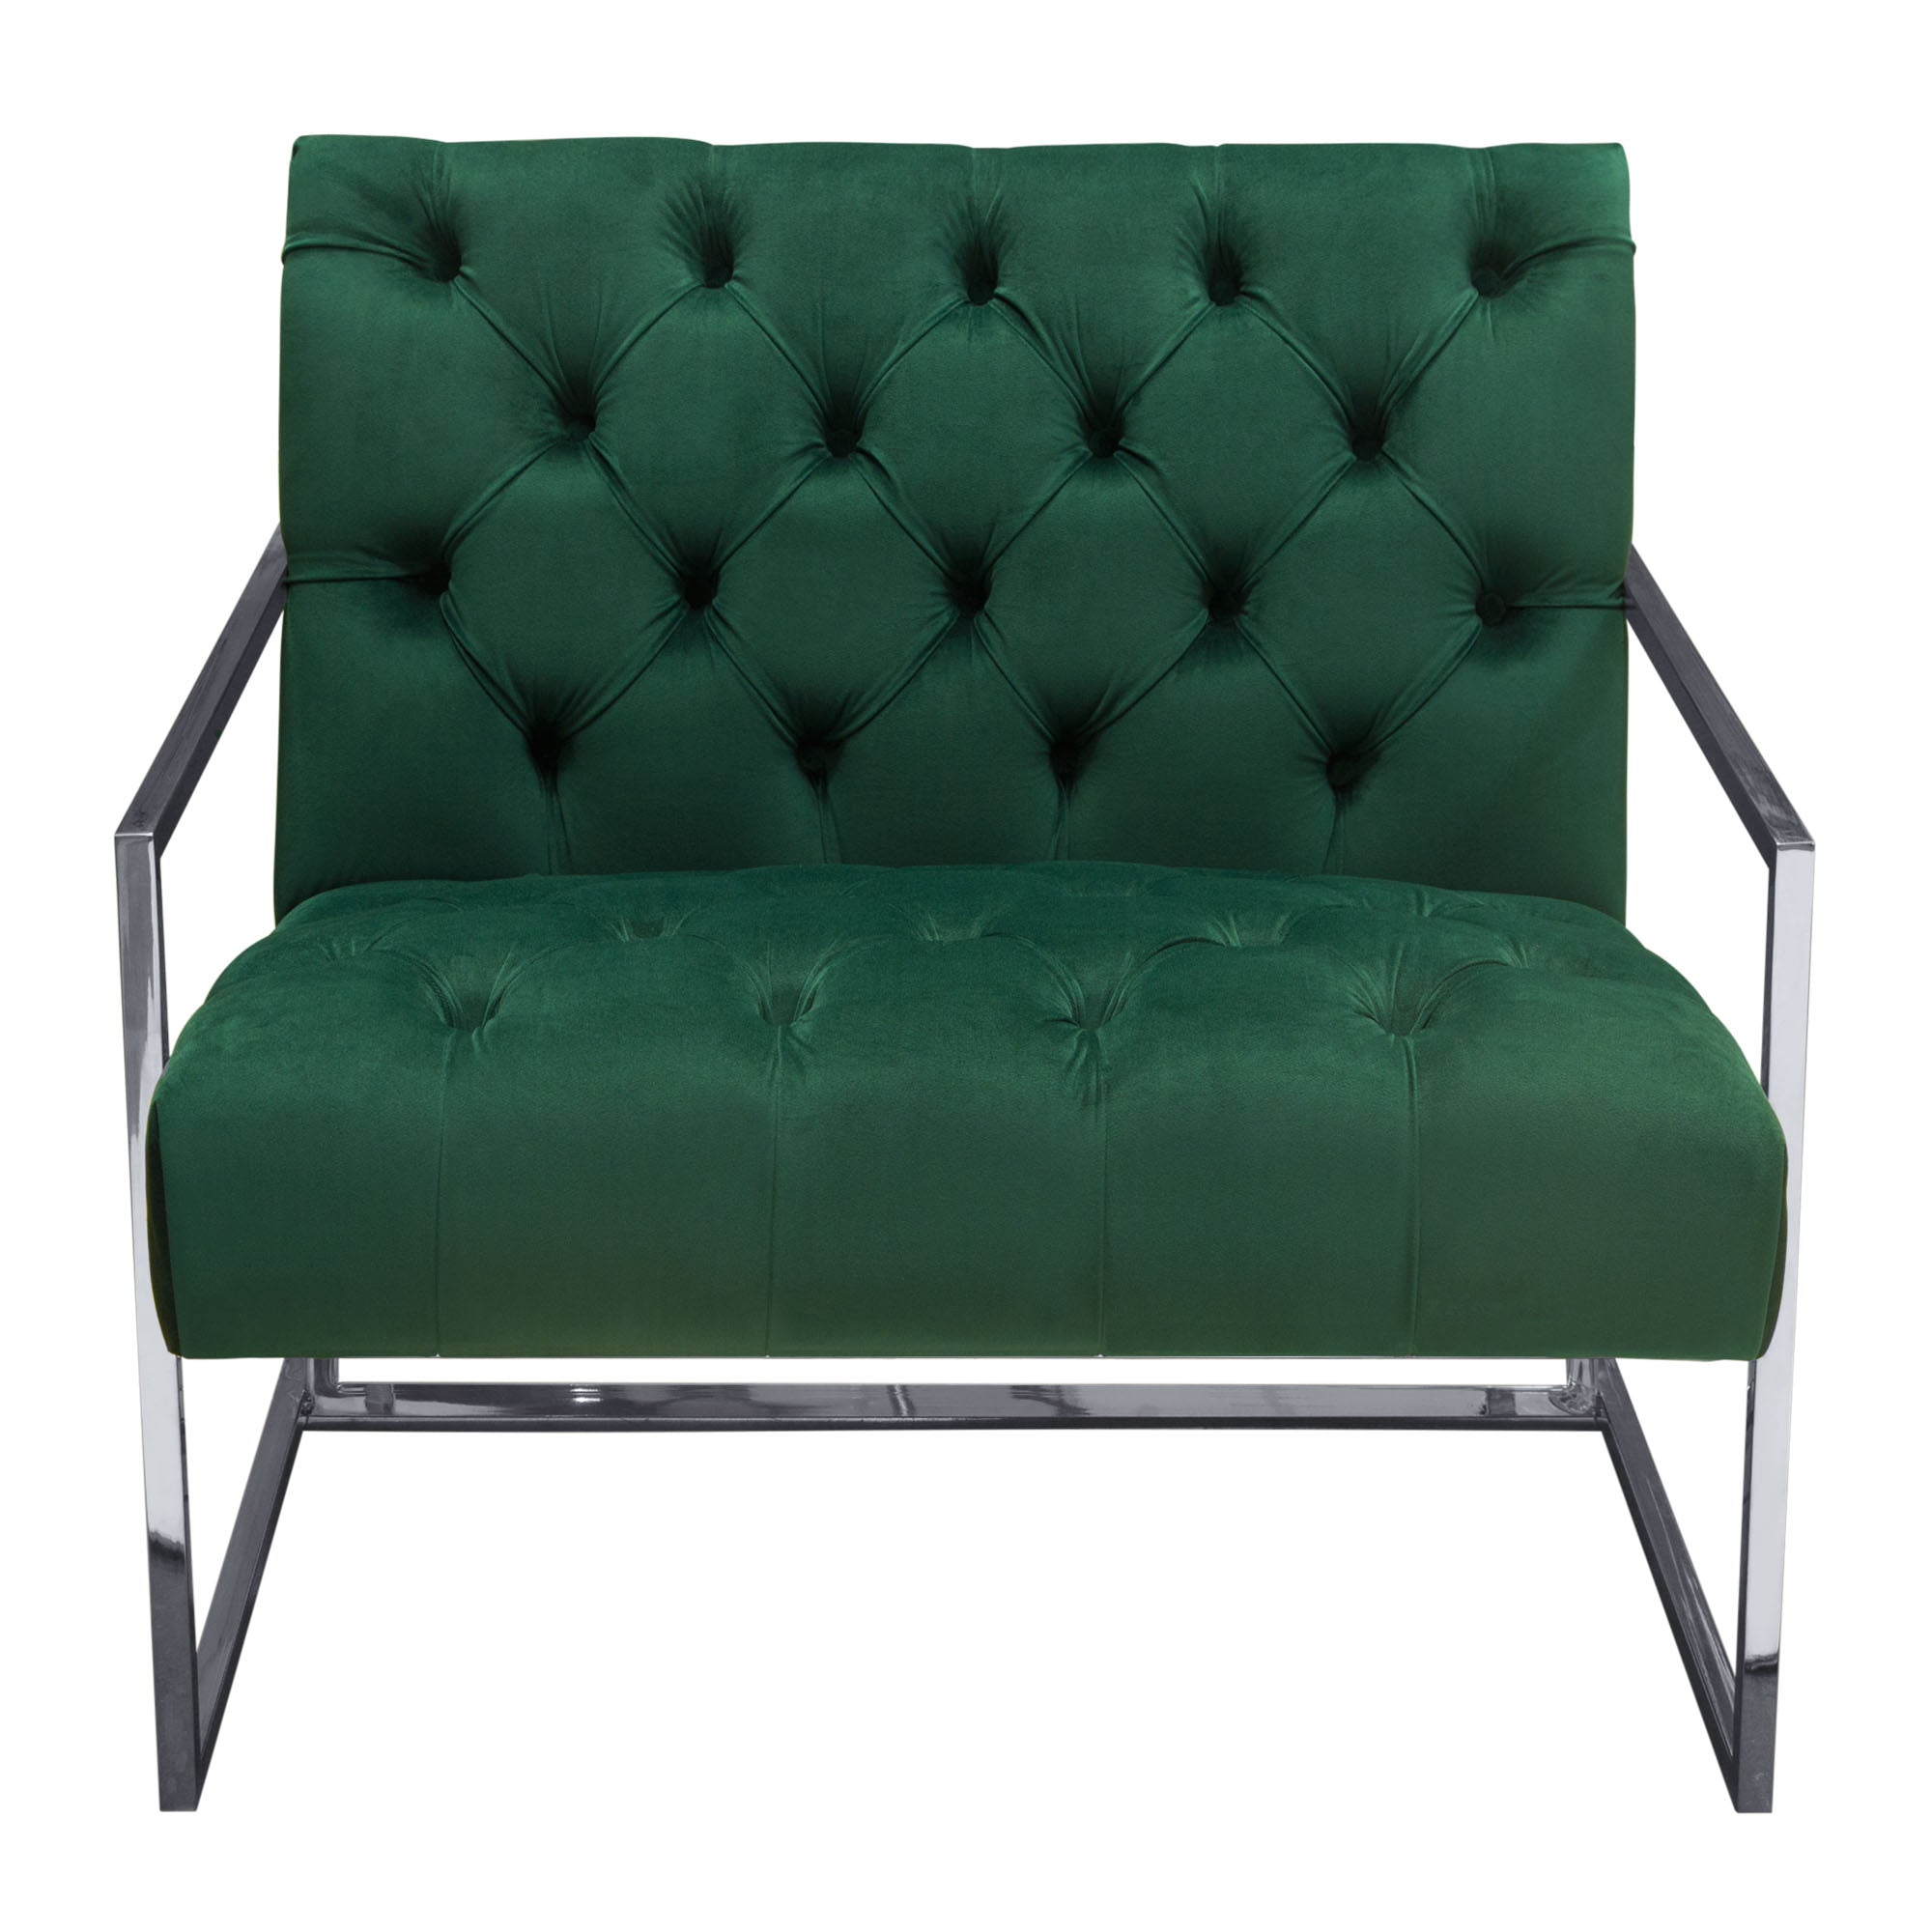 Diamond Sofa Luxe Accent Chair in Emerald Green Tufted Velvet Fabric